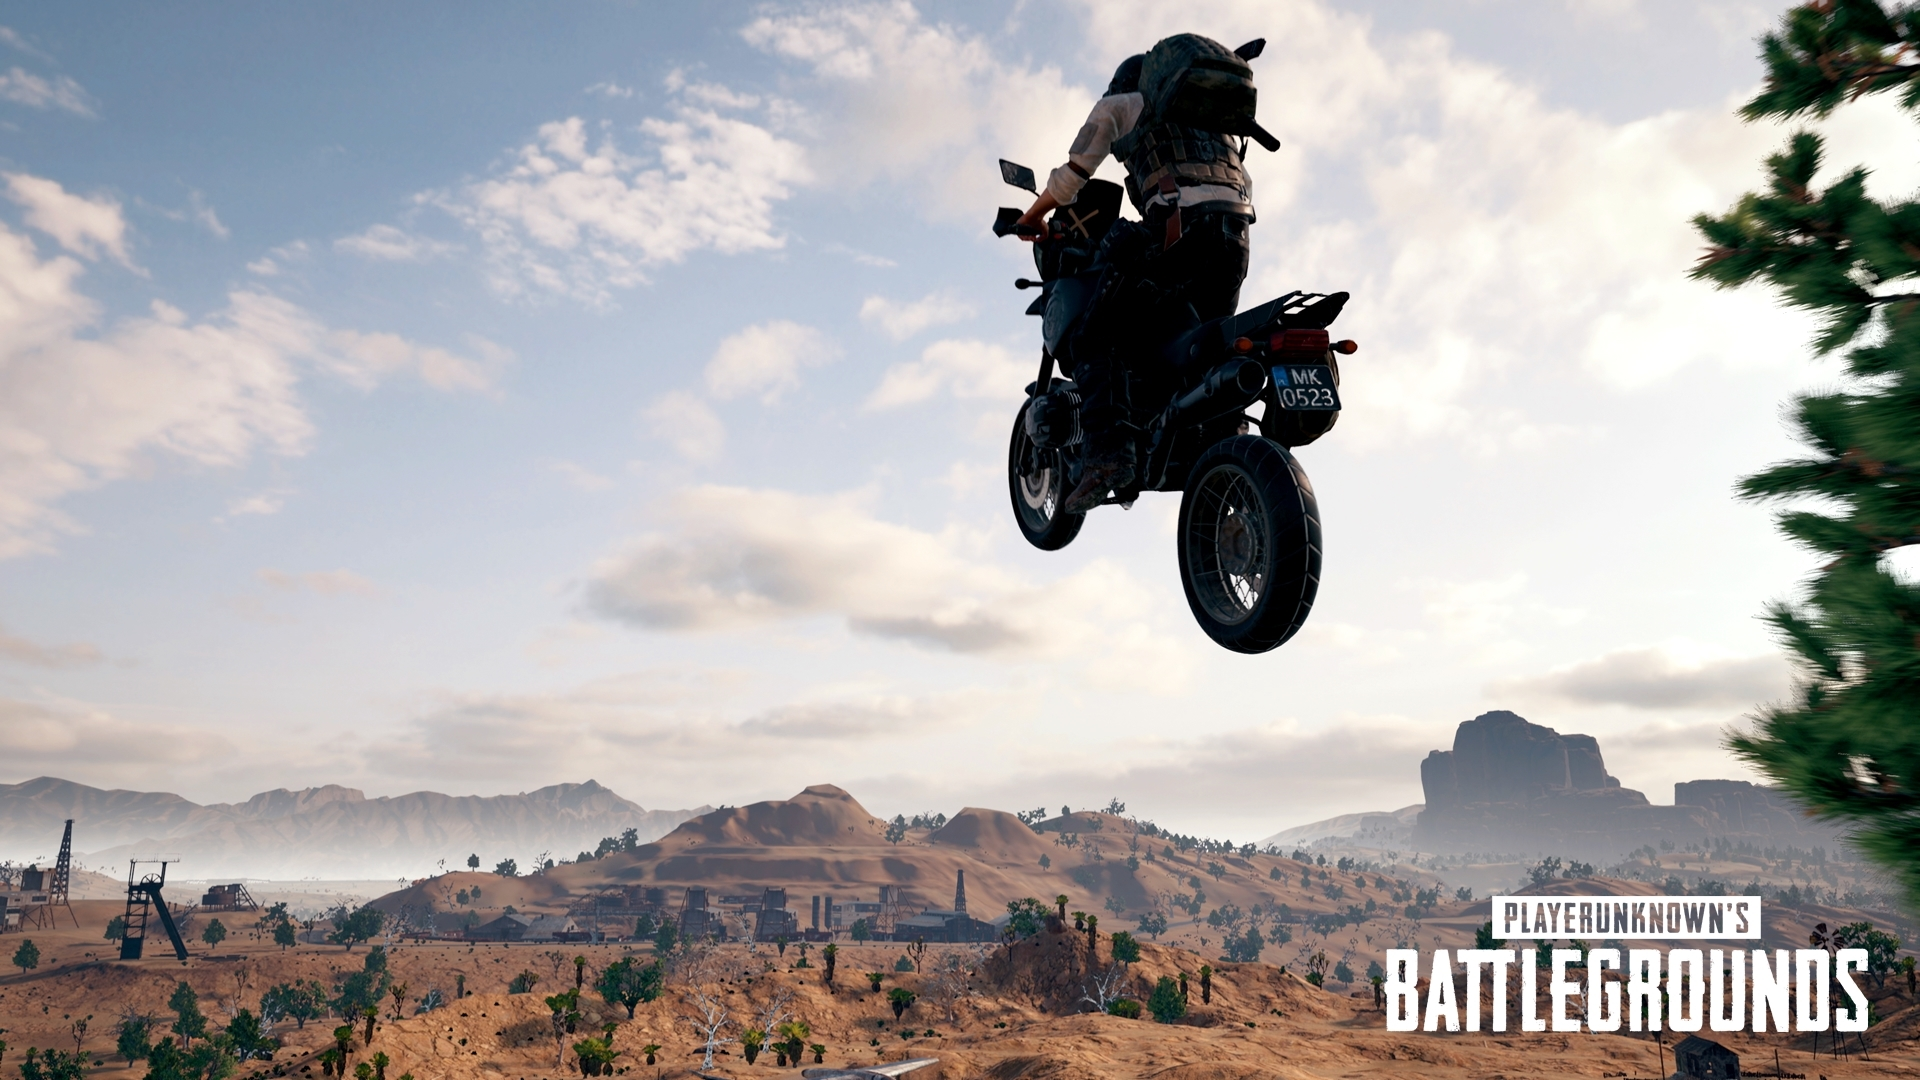 Pubg Mobile Hd Coming Soon: New Map For PlayerUnknown's Battlegrounds Coming Soon